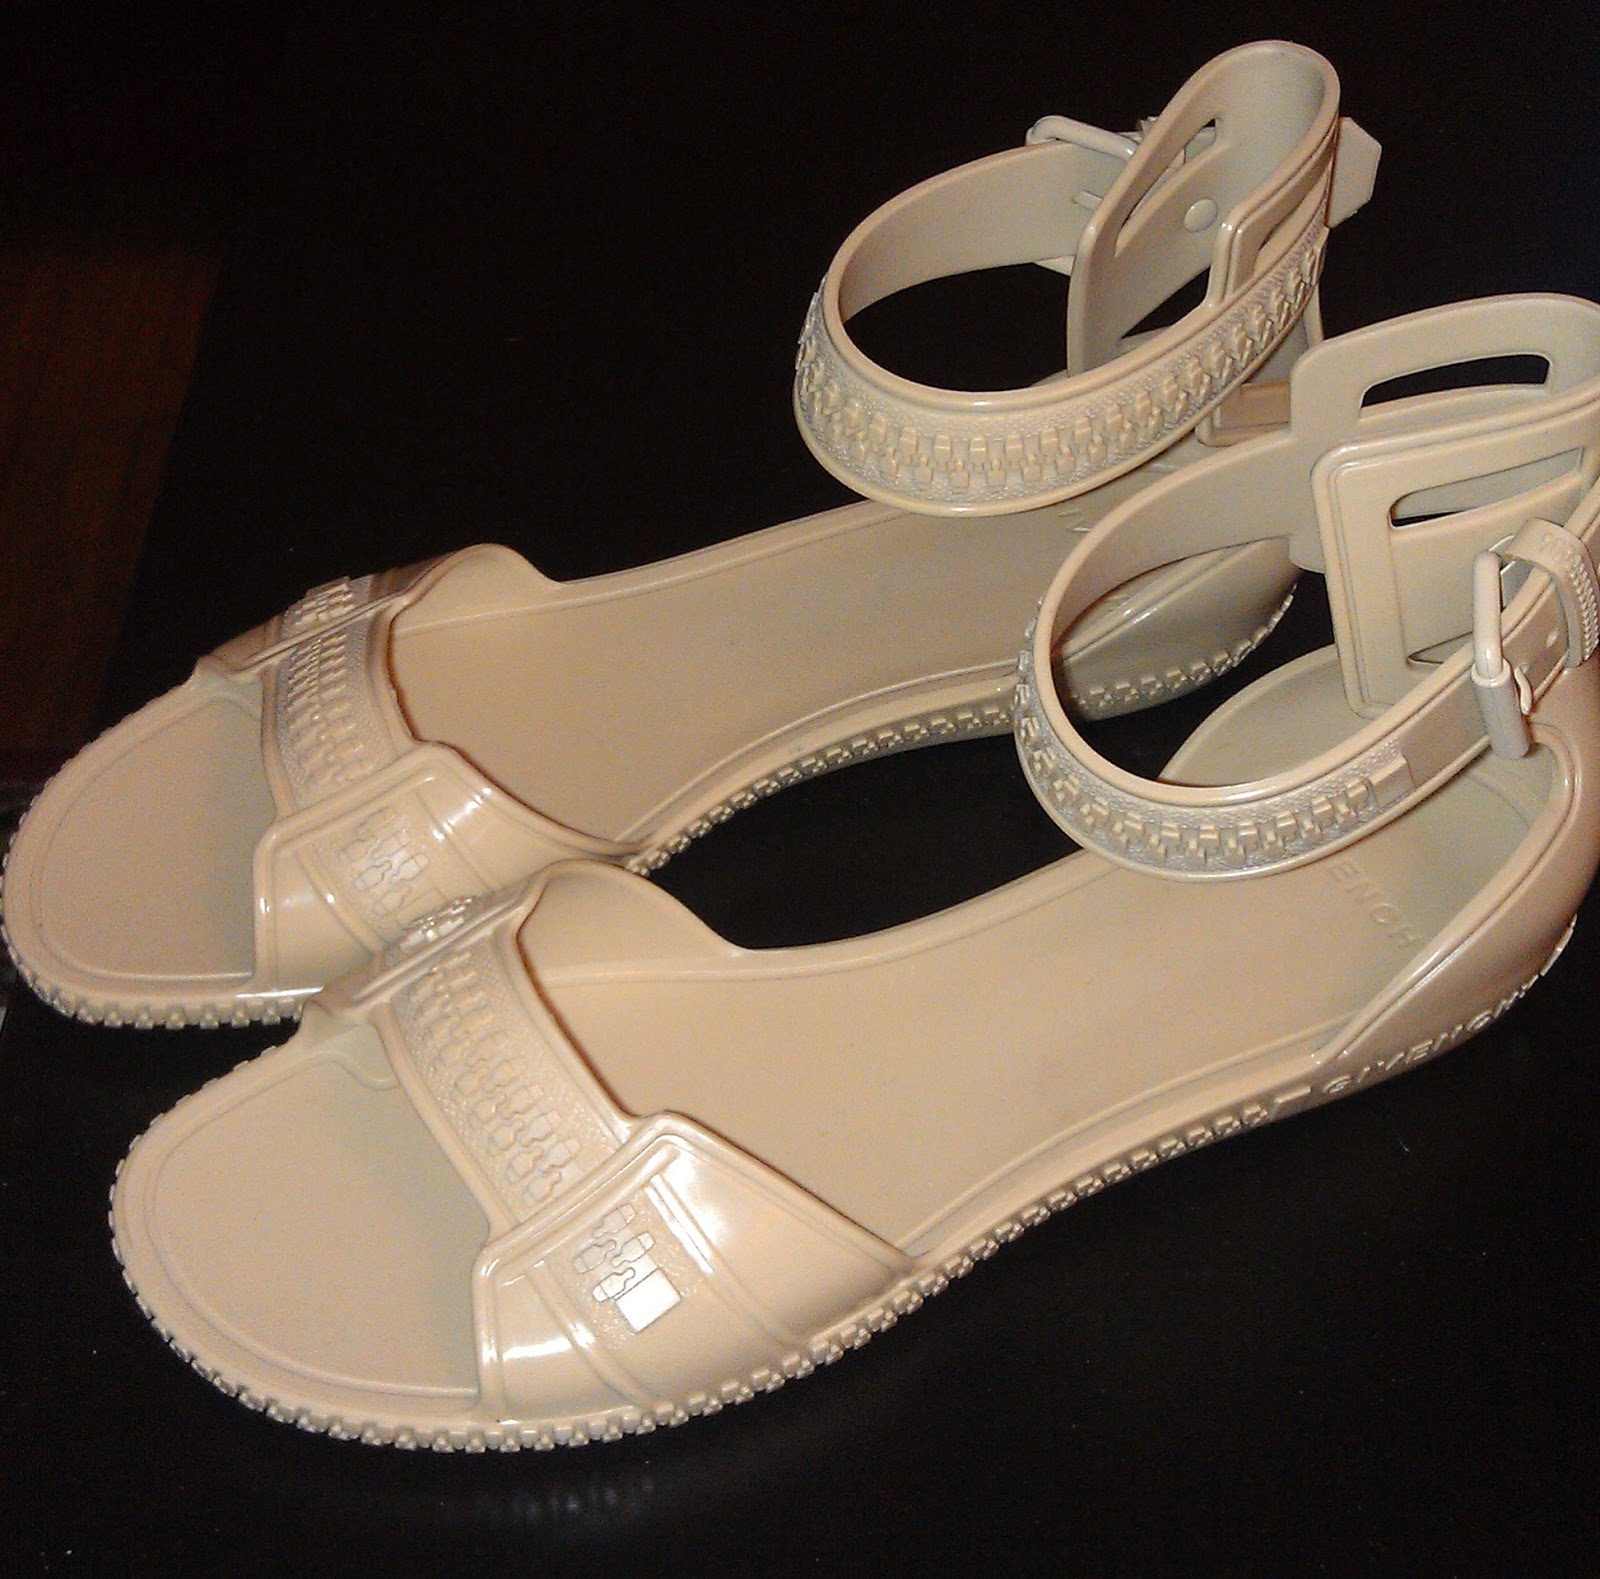 Givenchy Shoes Women Sfit